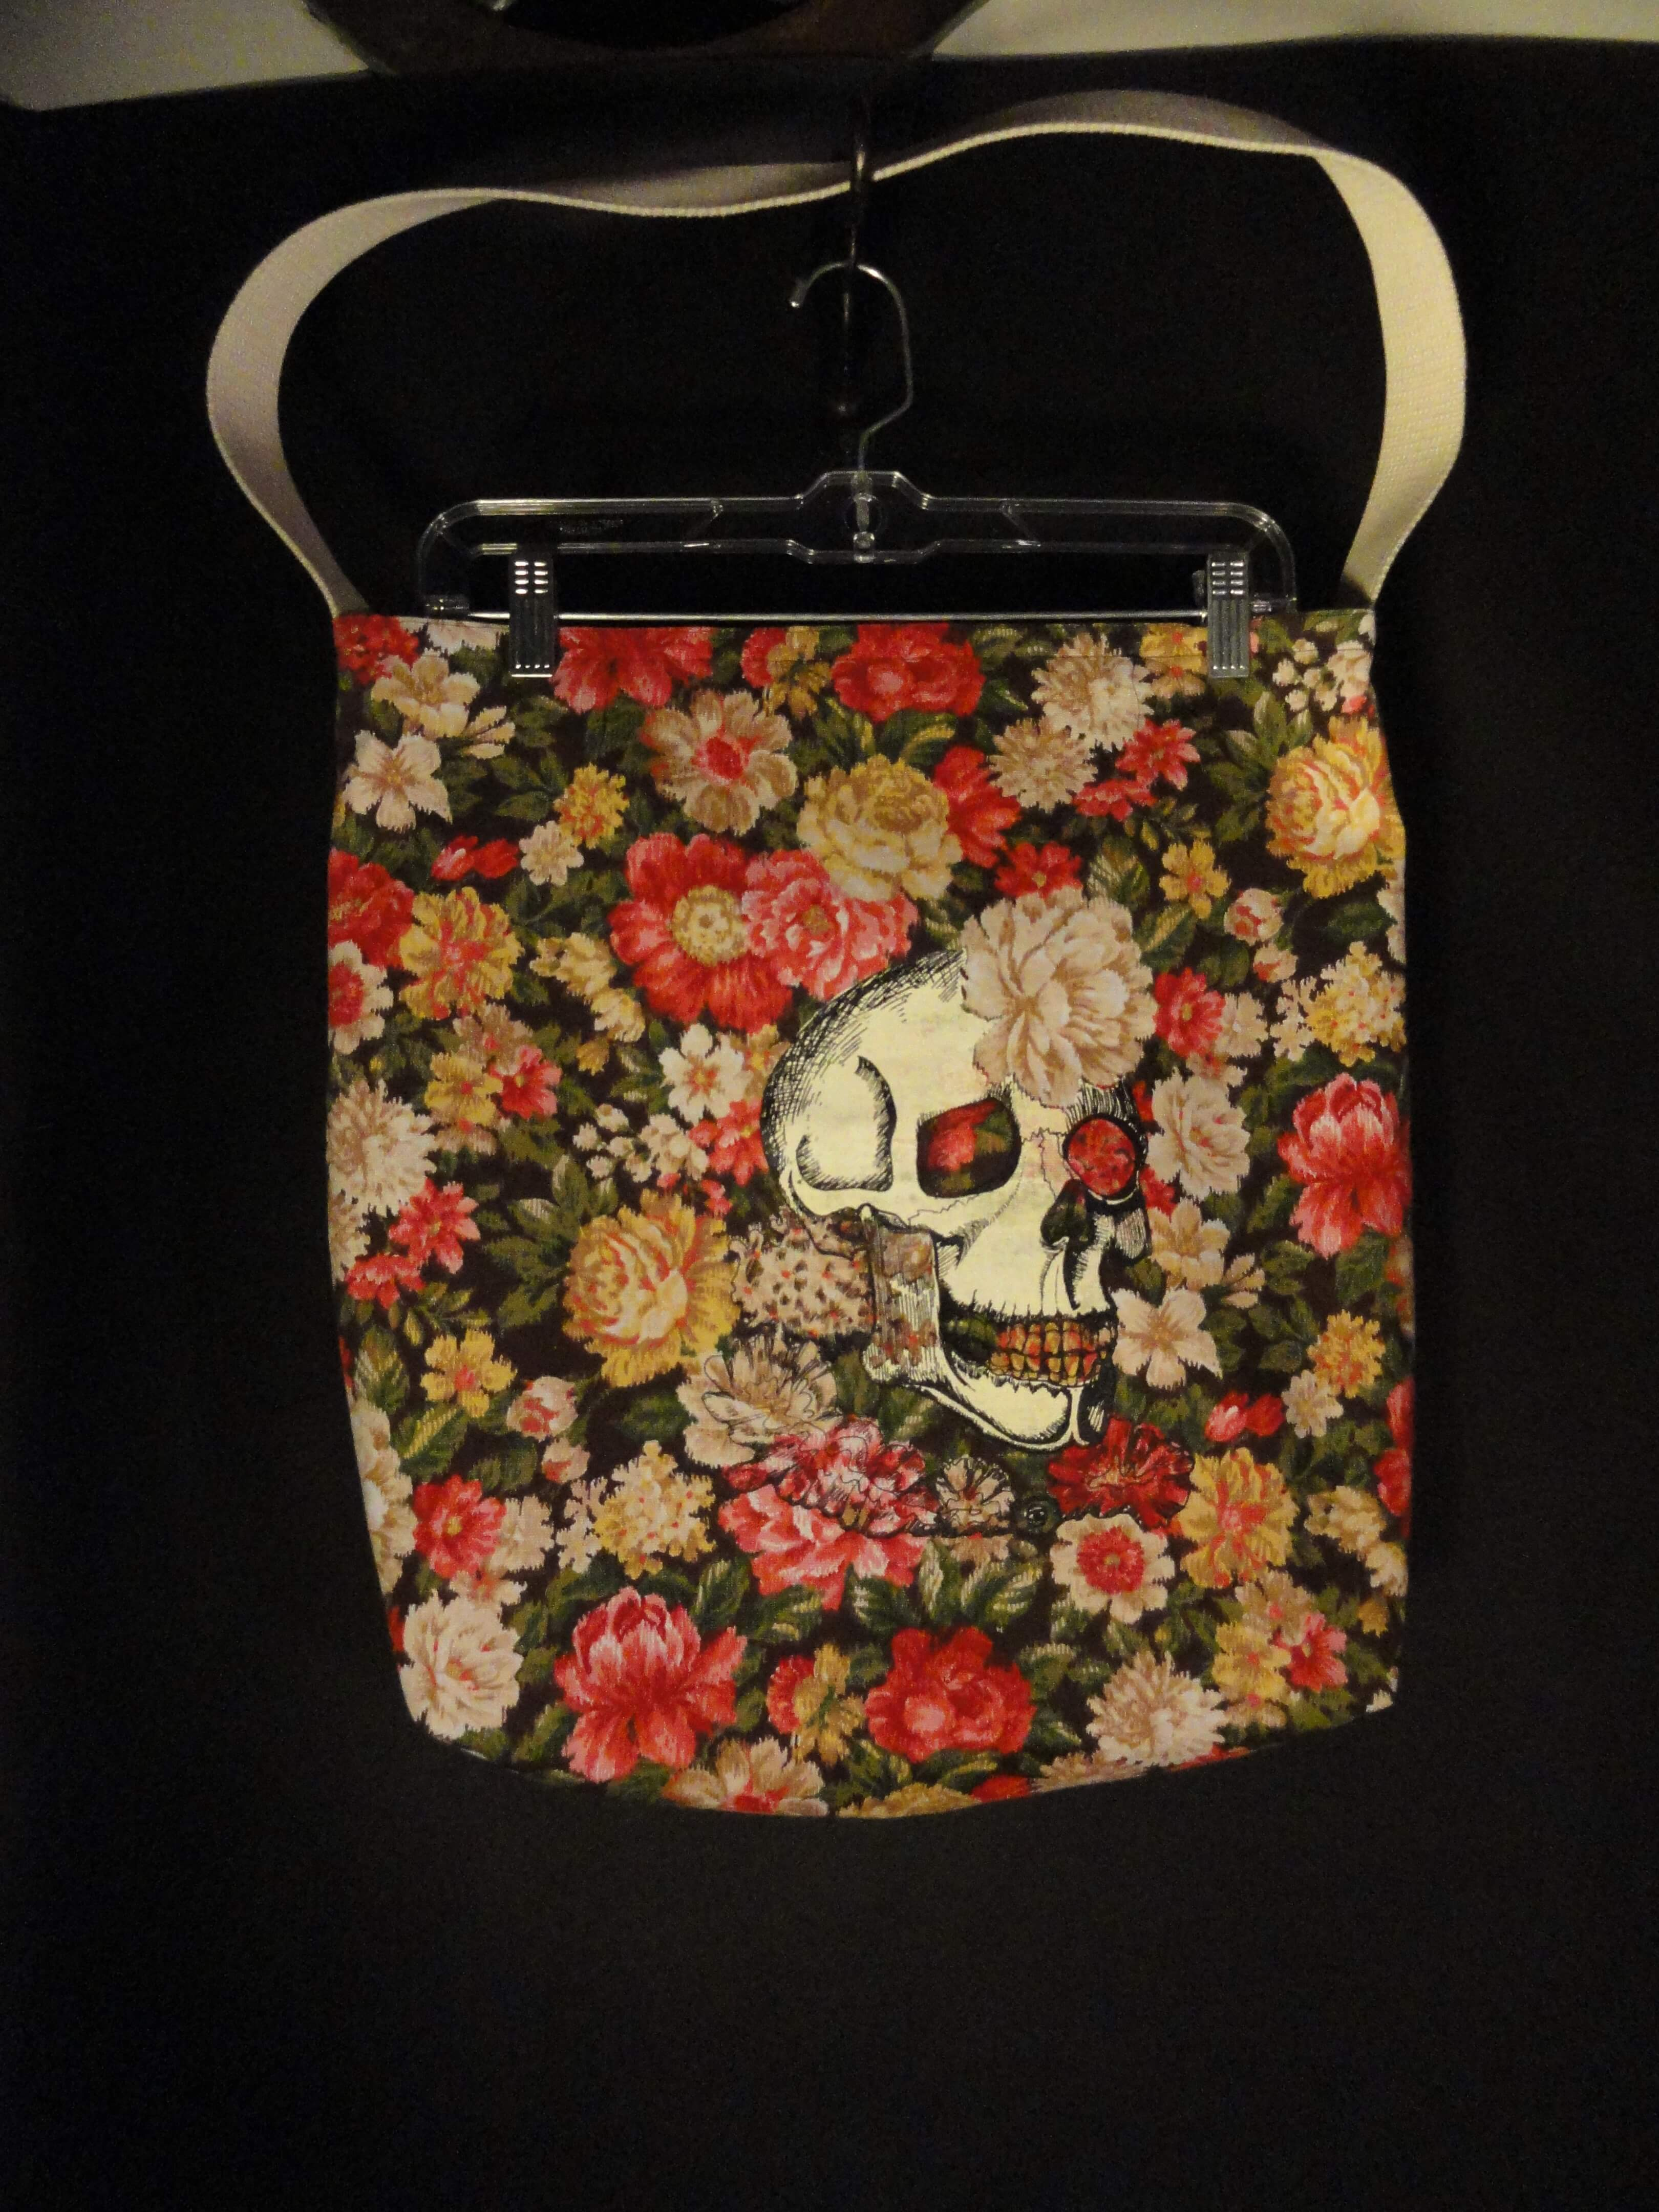 tote bag with skull on it